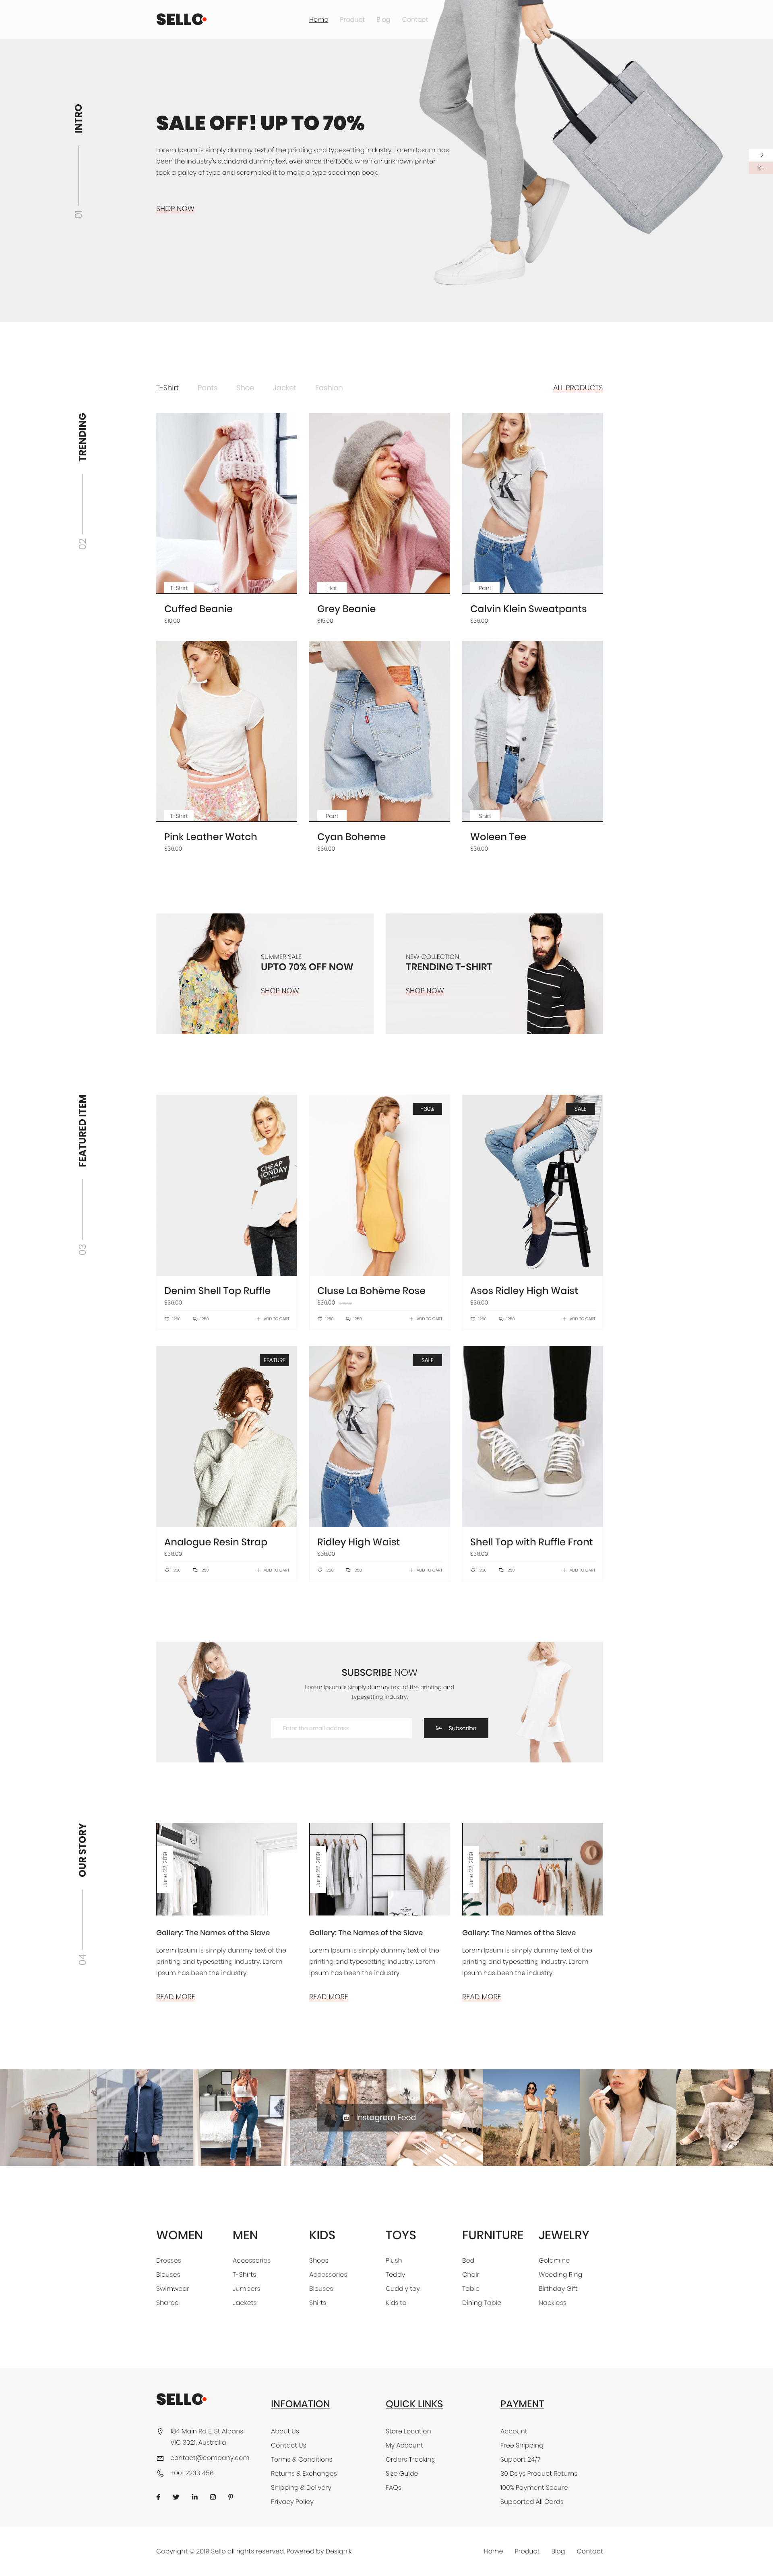 Sello - Mininal E-Commerce Website - Minimal but Creative E-Commerce Template